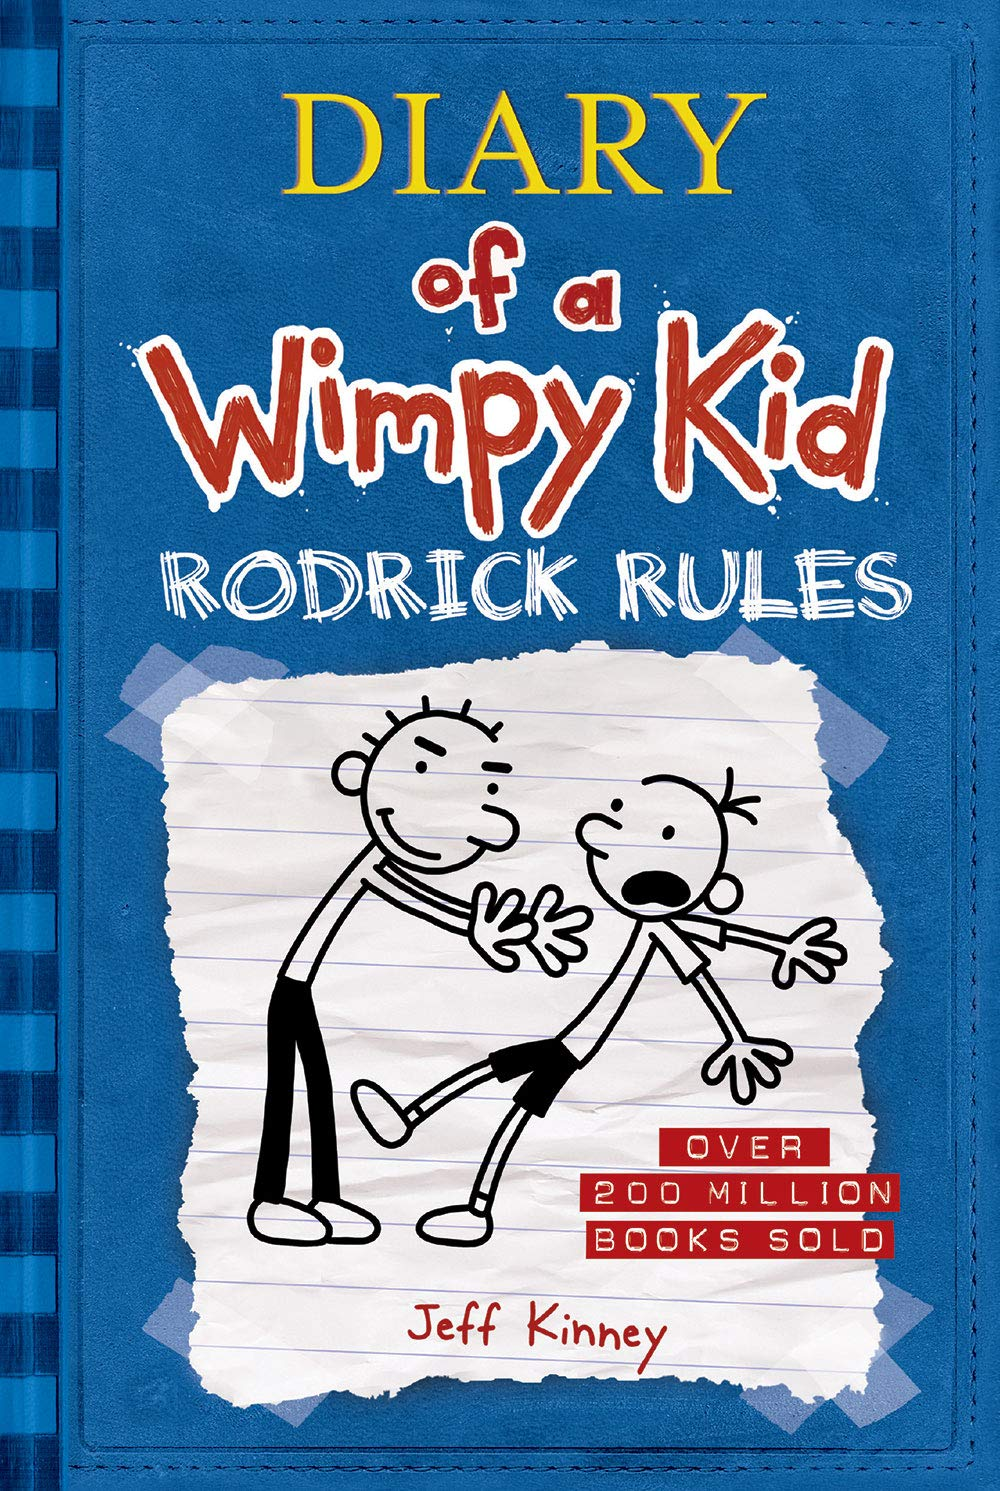 diary of a wimpy kid books in order